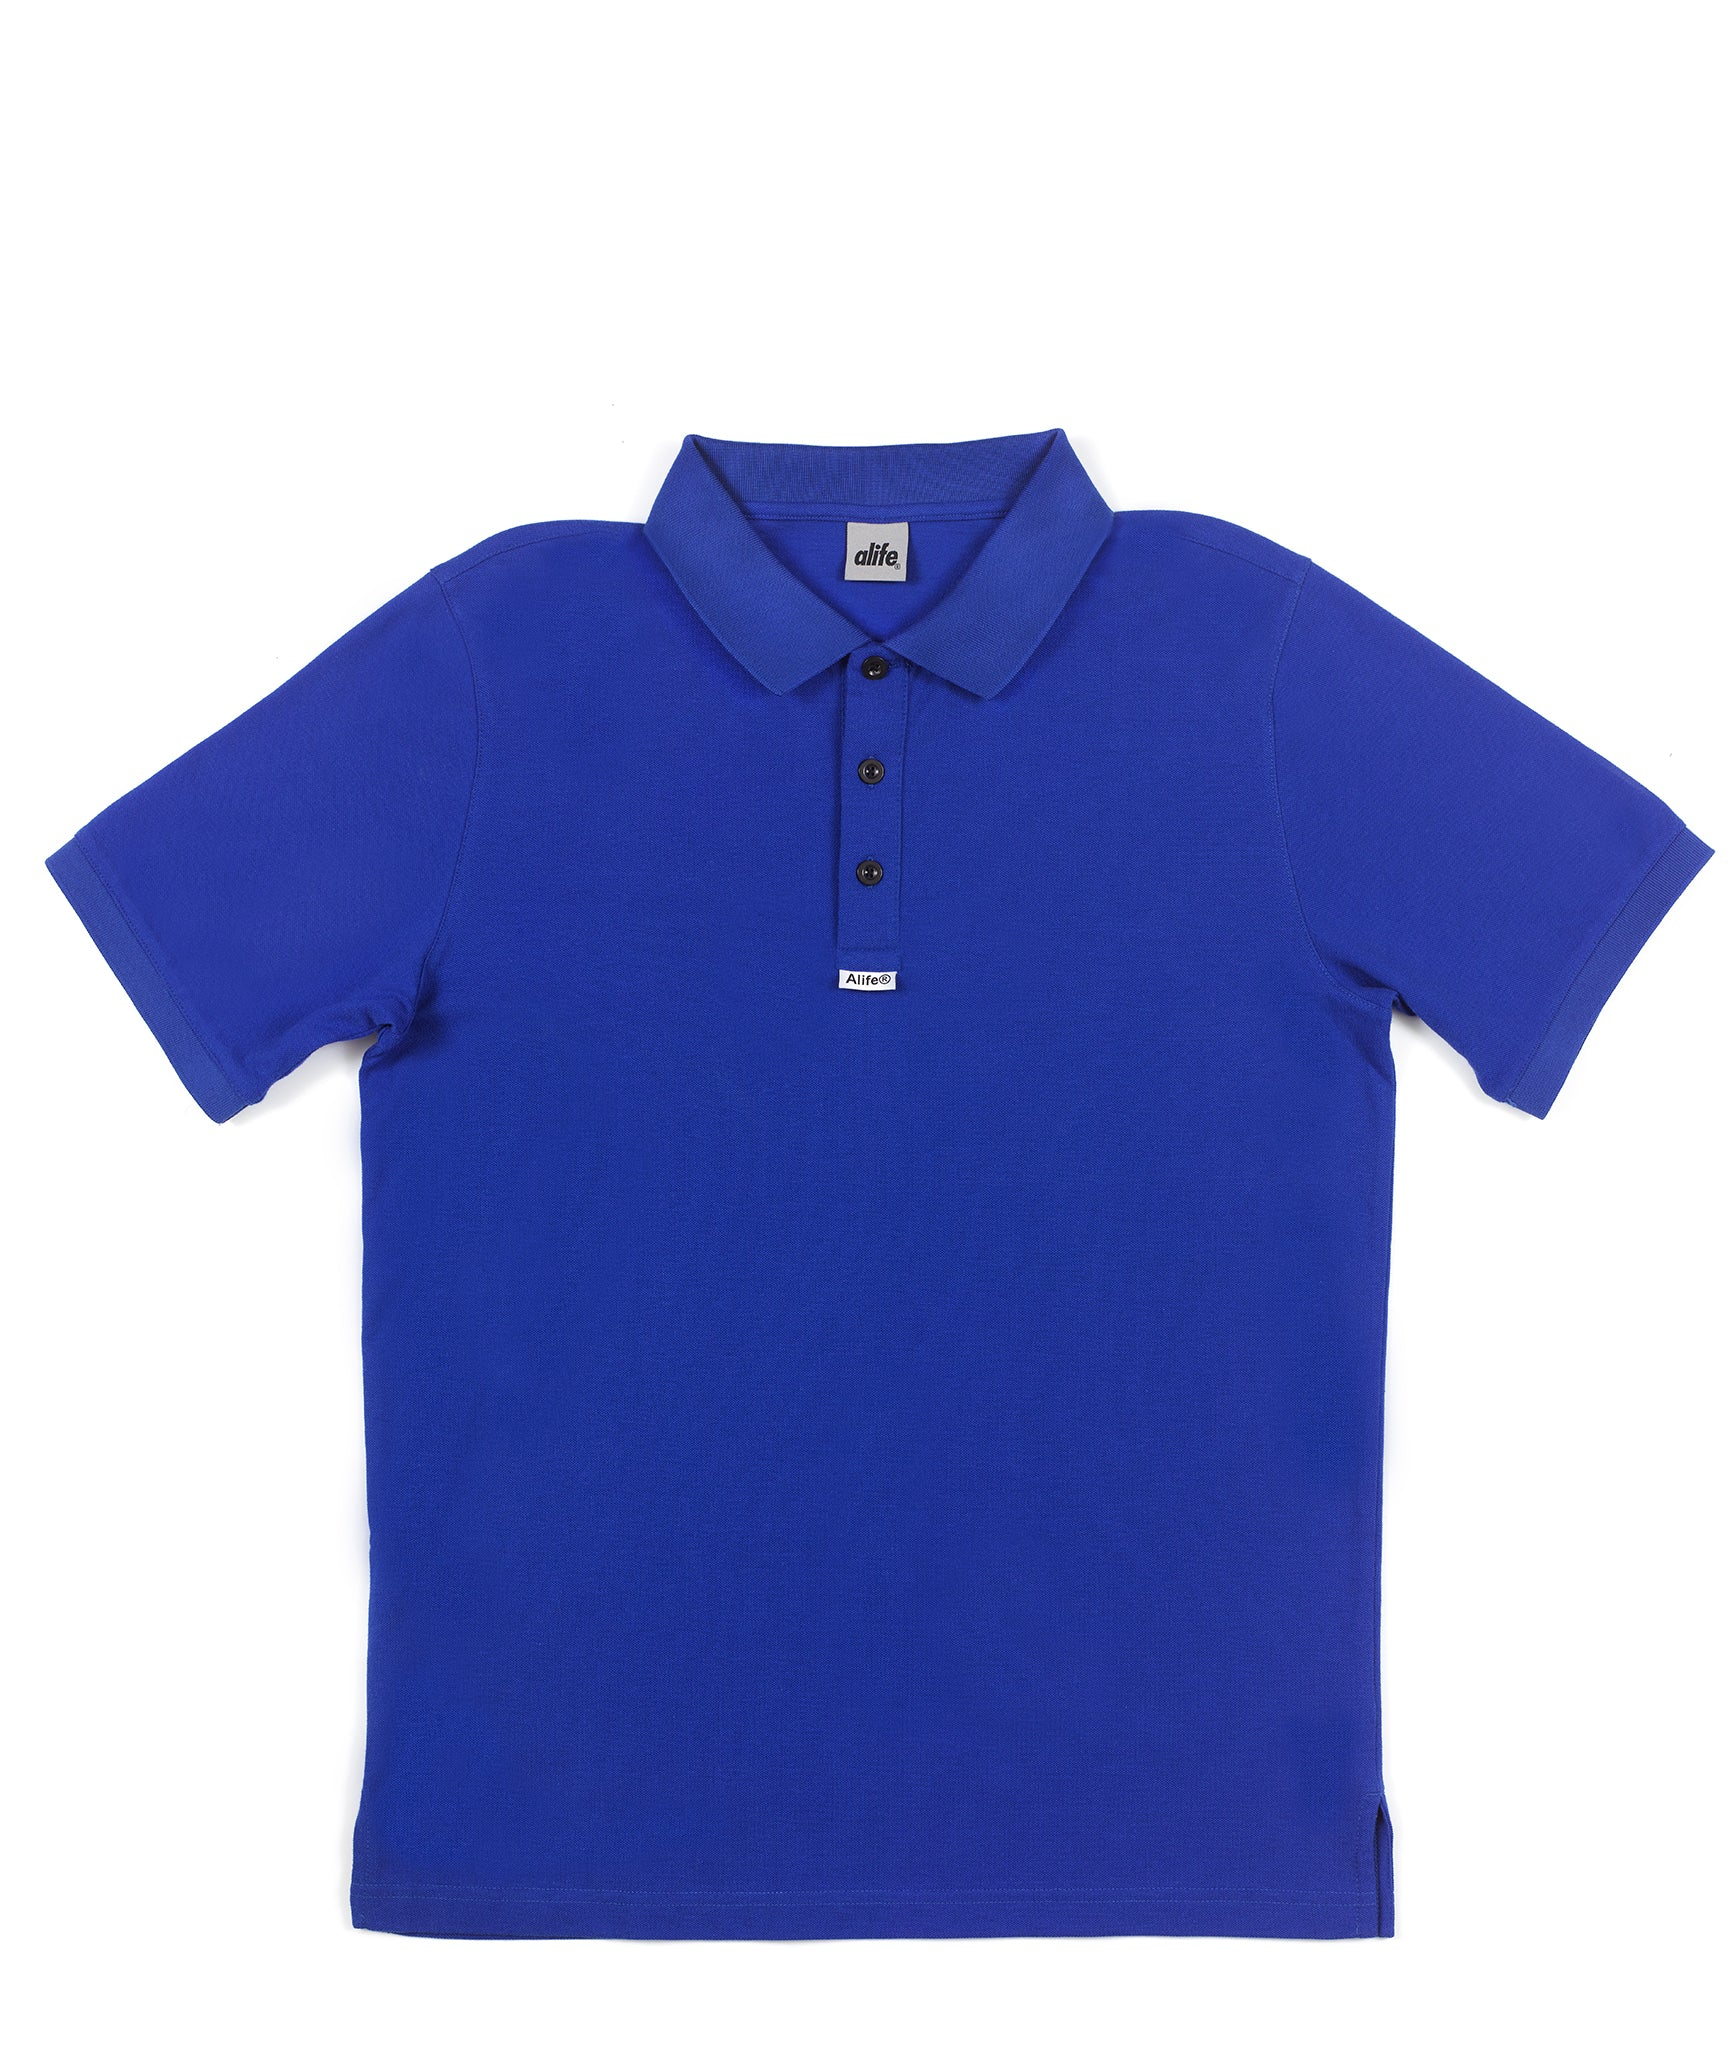 Alife Polo Royal Blue